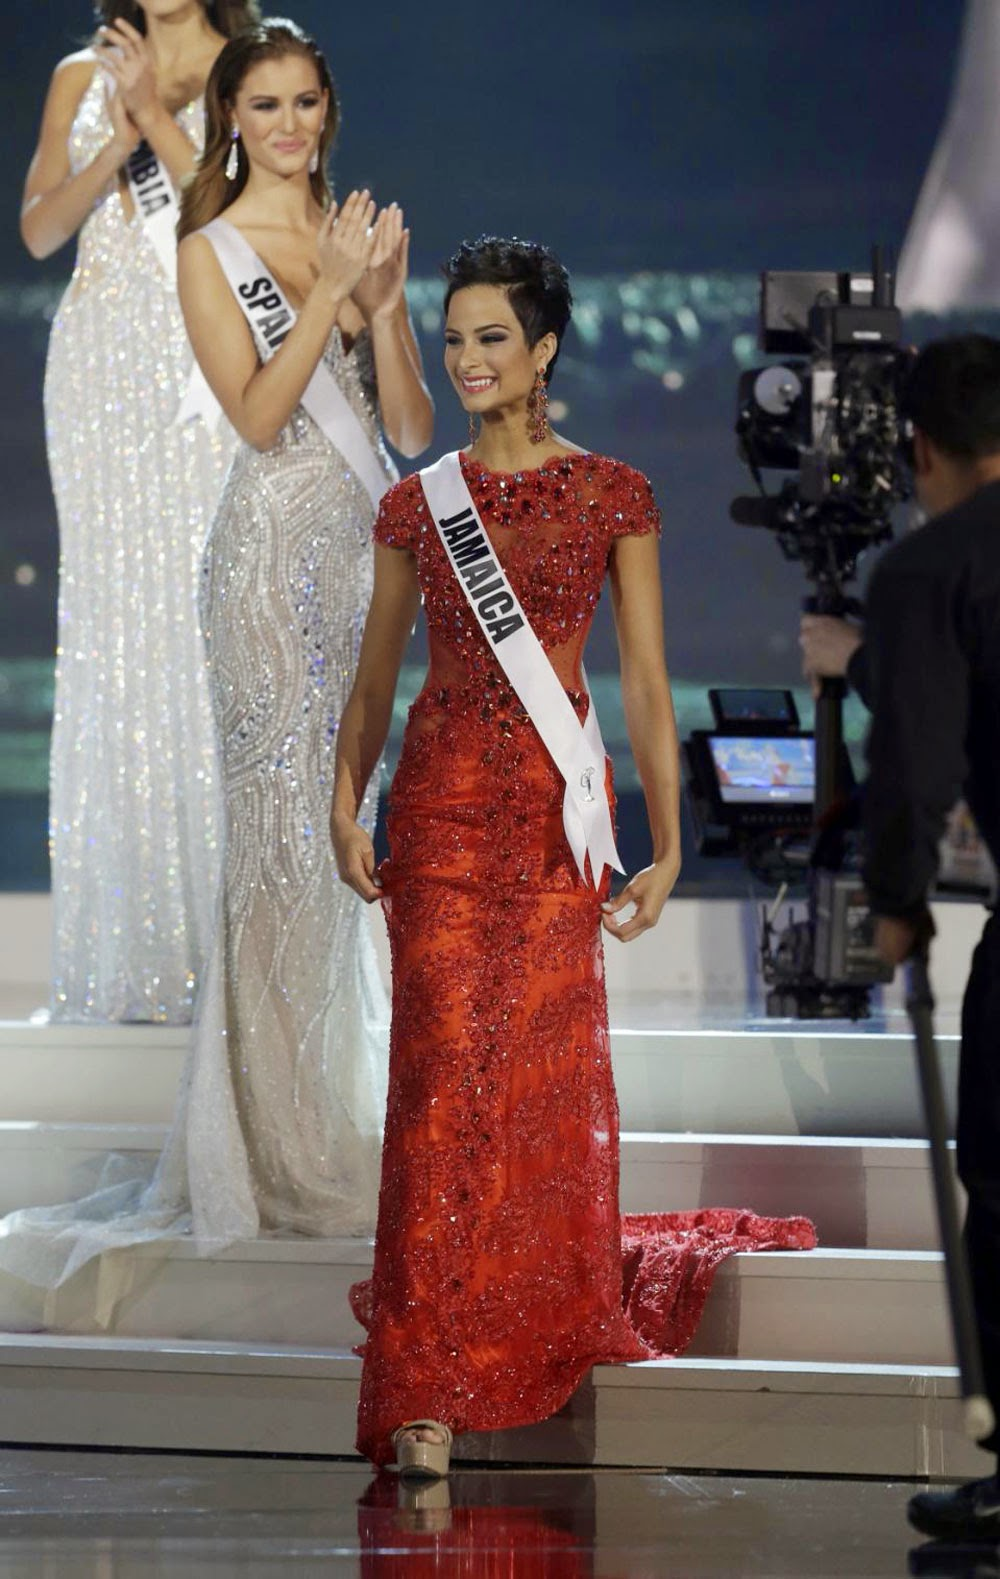 Miss Jamaica had to leave the stage after coming in fifth in the contest